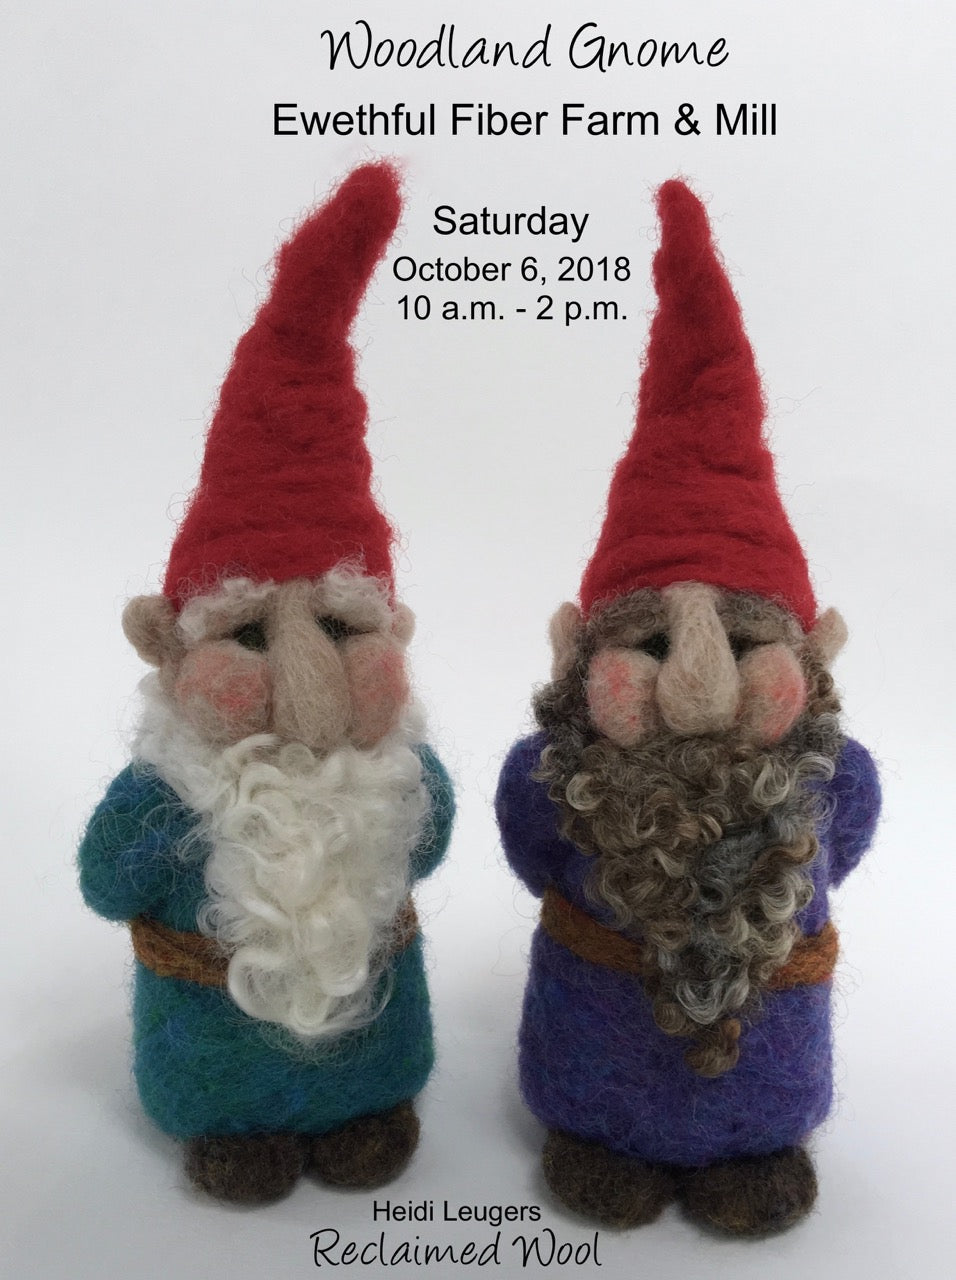 Beginning Felting: Learn to Felt a Woodland Gnome Saturday October 6th, 10am-2pm